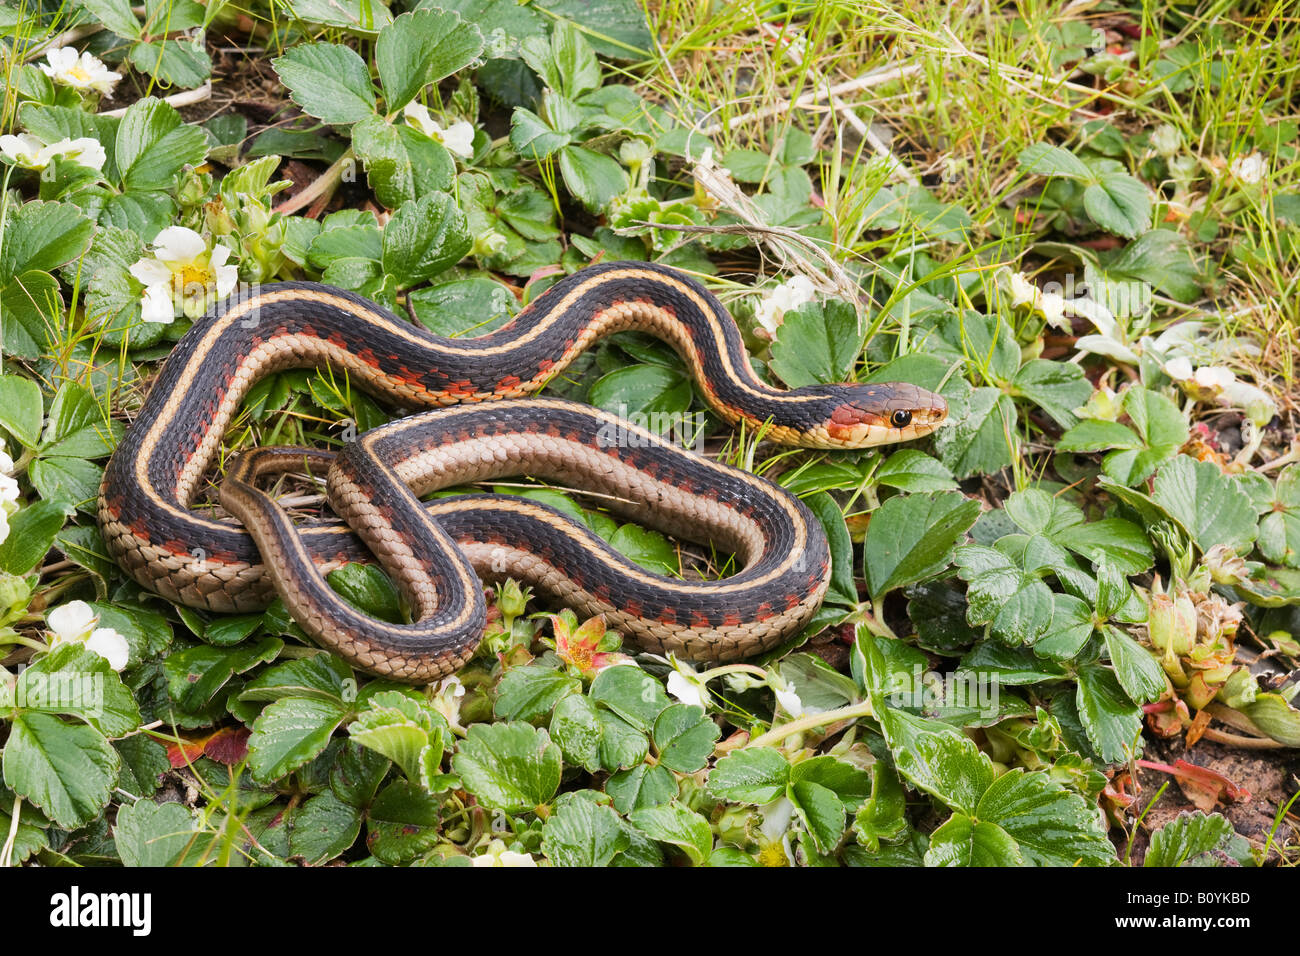 California Red sided Garter Snake Thamnophis sirtalis infernalis Northern California United States - Stock Image